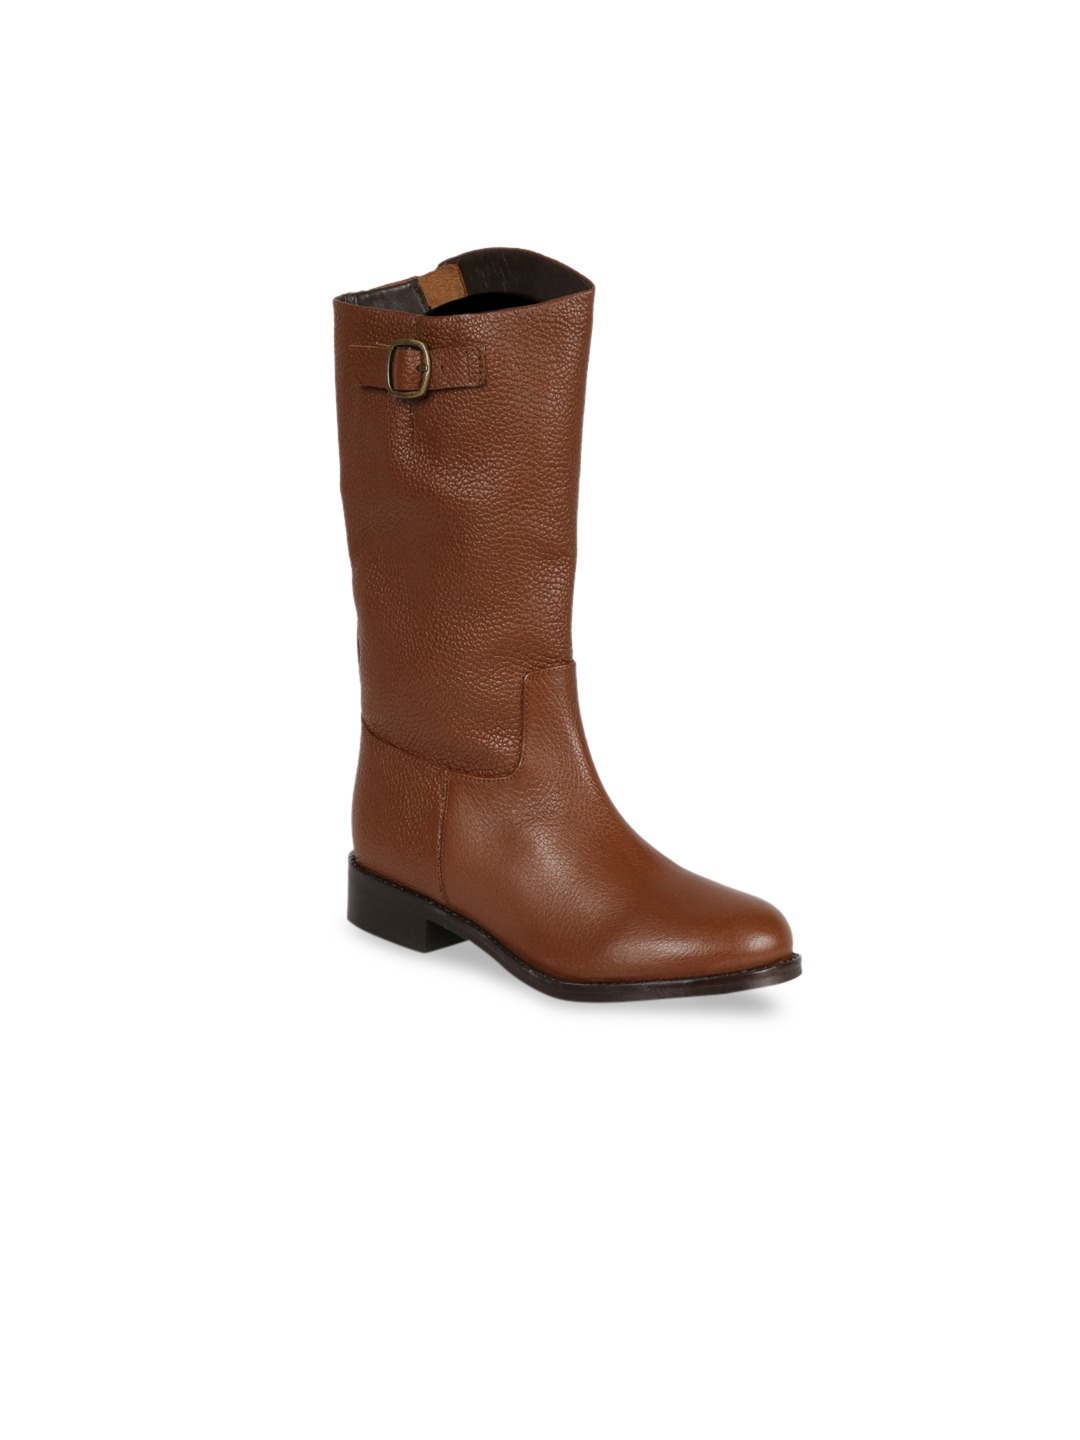 Tan Brown Solid Leather High-Top Flat Boots